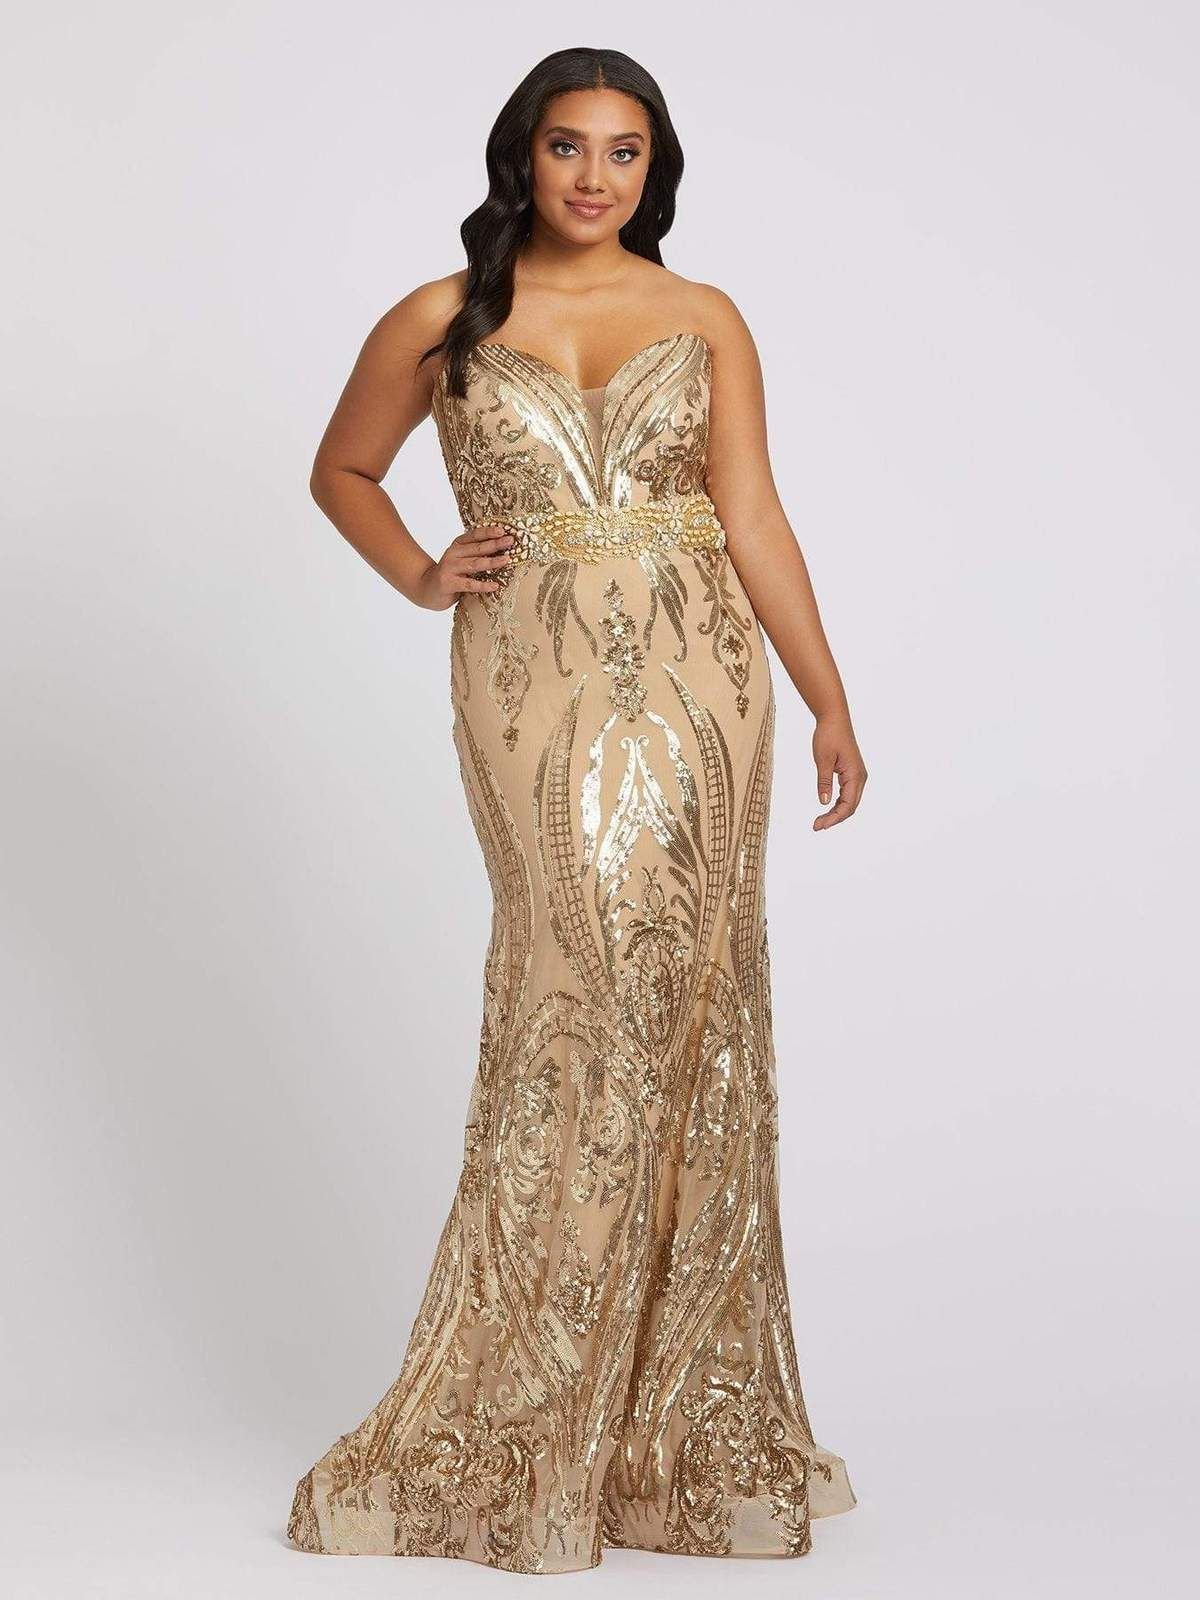 Strapless Damask Sequin Trumpet Gown Gold In 2021 Plus Size Evening Gown Gold Plus Size Dresses Plus Size Prom Dresses [ 1600 x 1200 Pixel ]